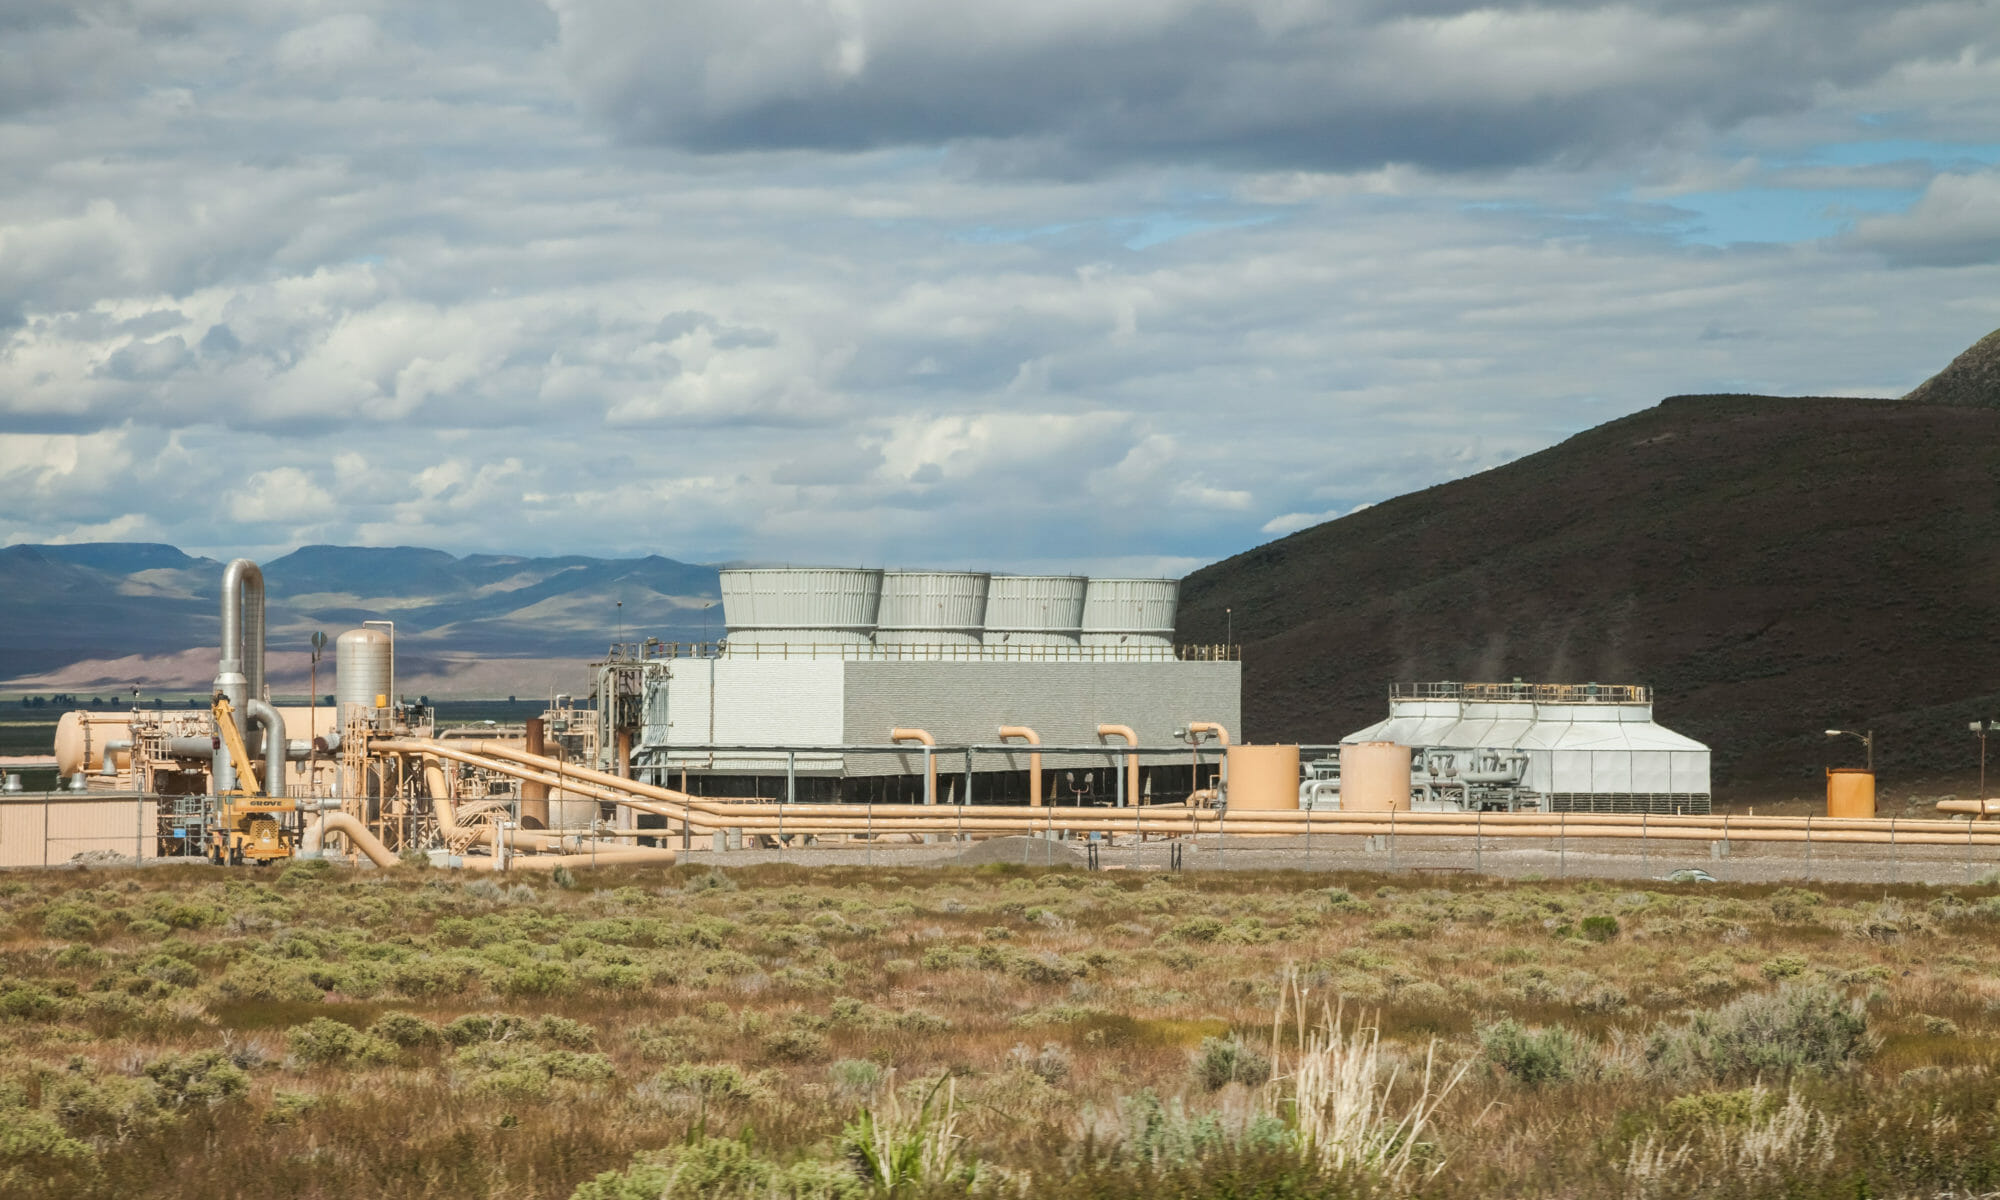 The Indy Explains Geothermal energy in Nevada The Nevada